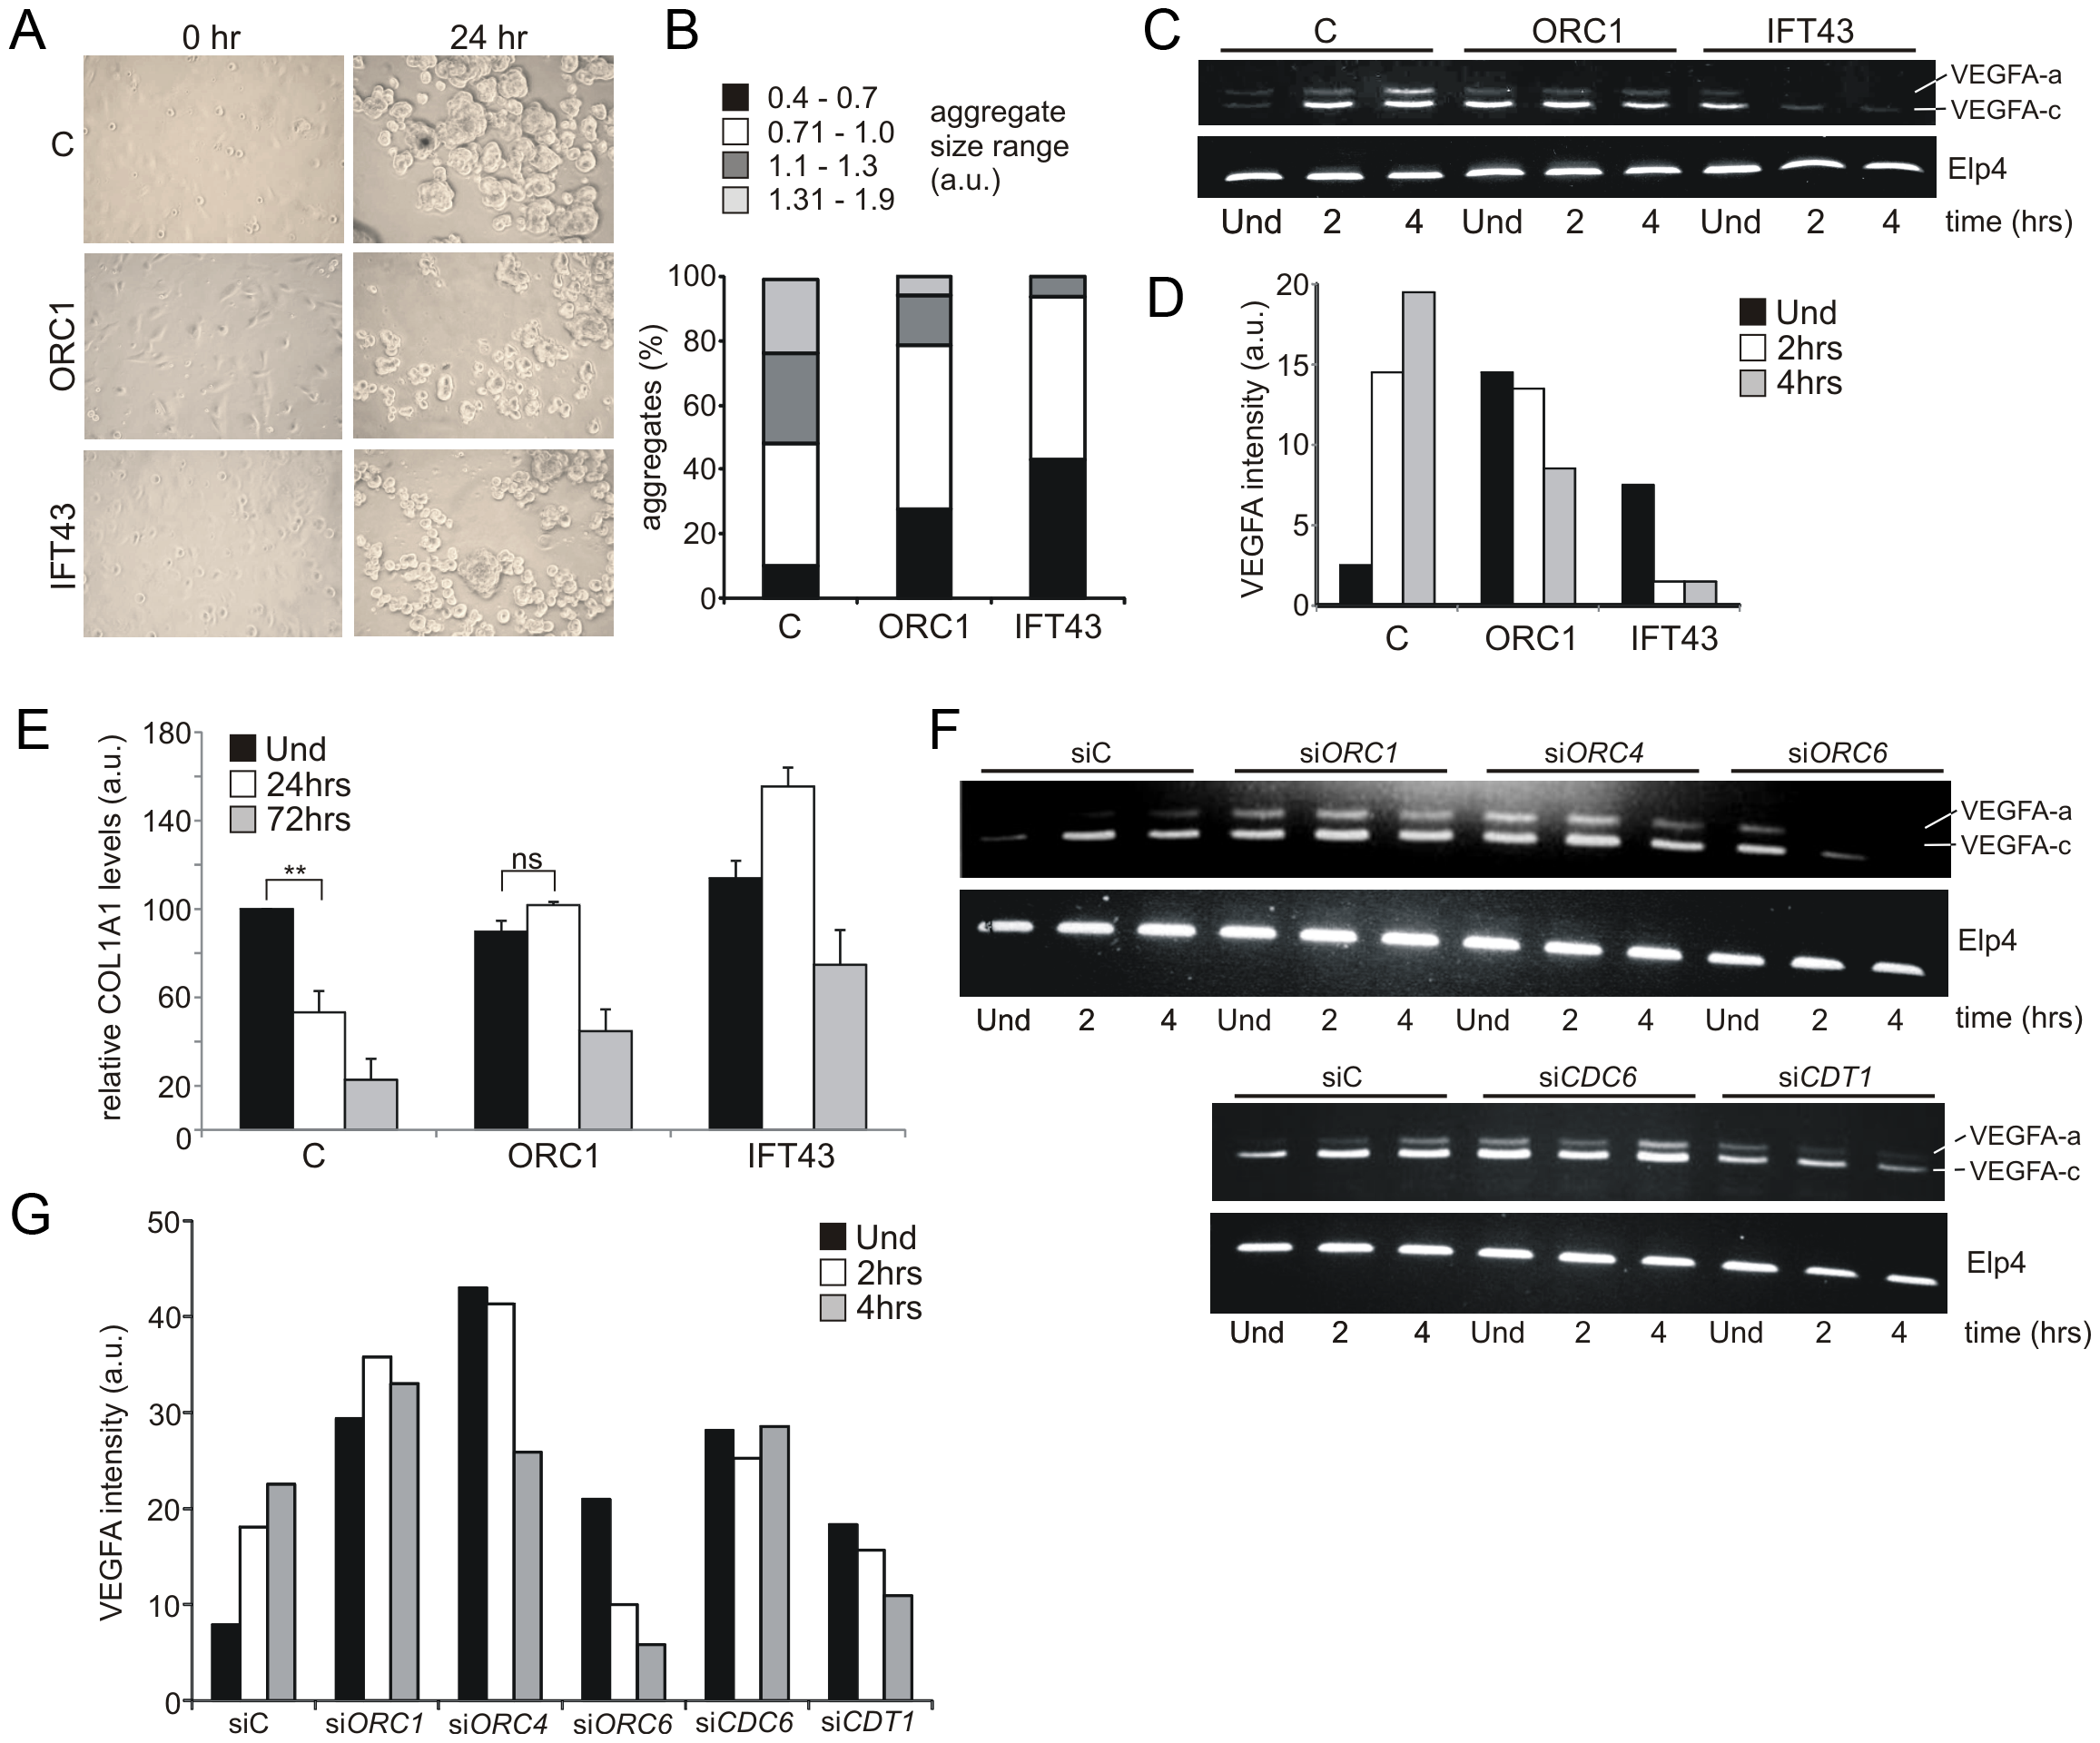 ORC1 Meier-Gorlin syndrome and IFT43 Sensenbrenner syndrome fibroblasts exhibit impaired chondroinduction.